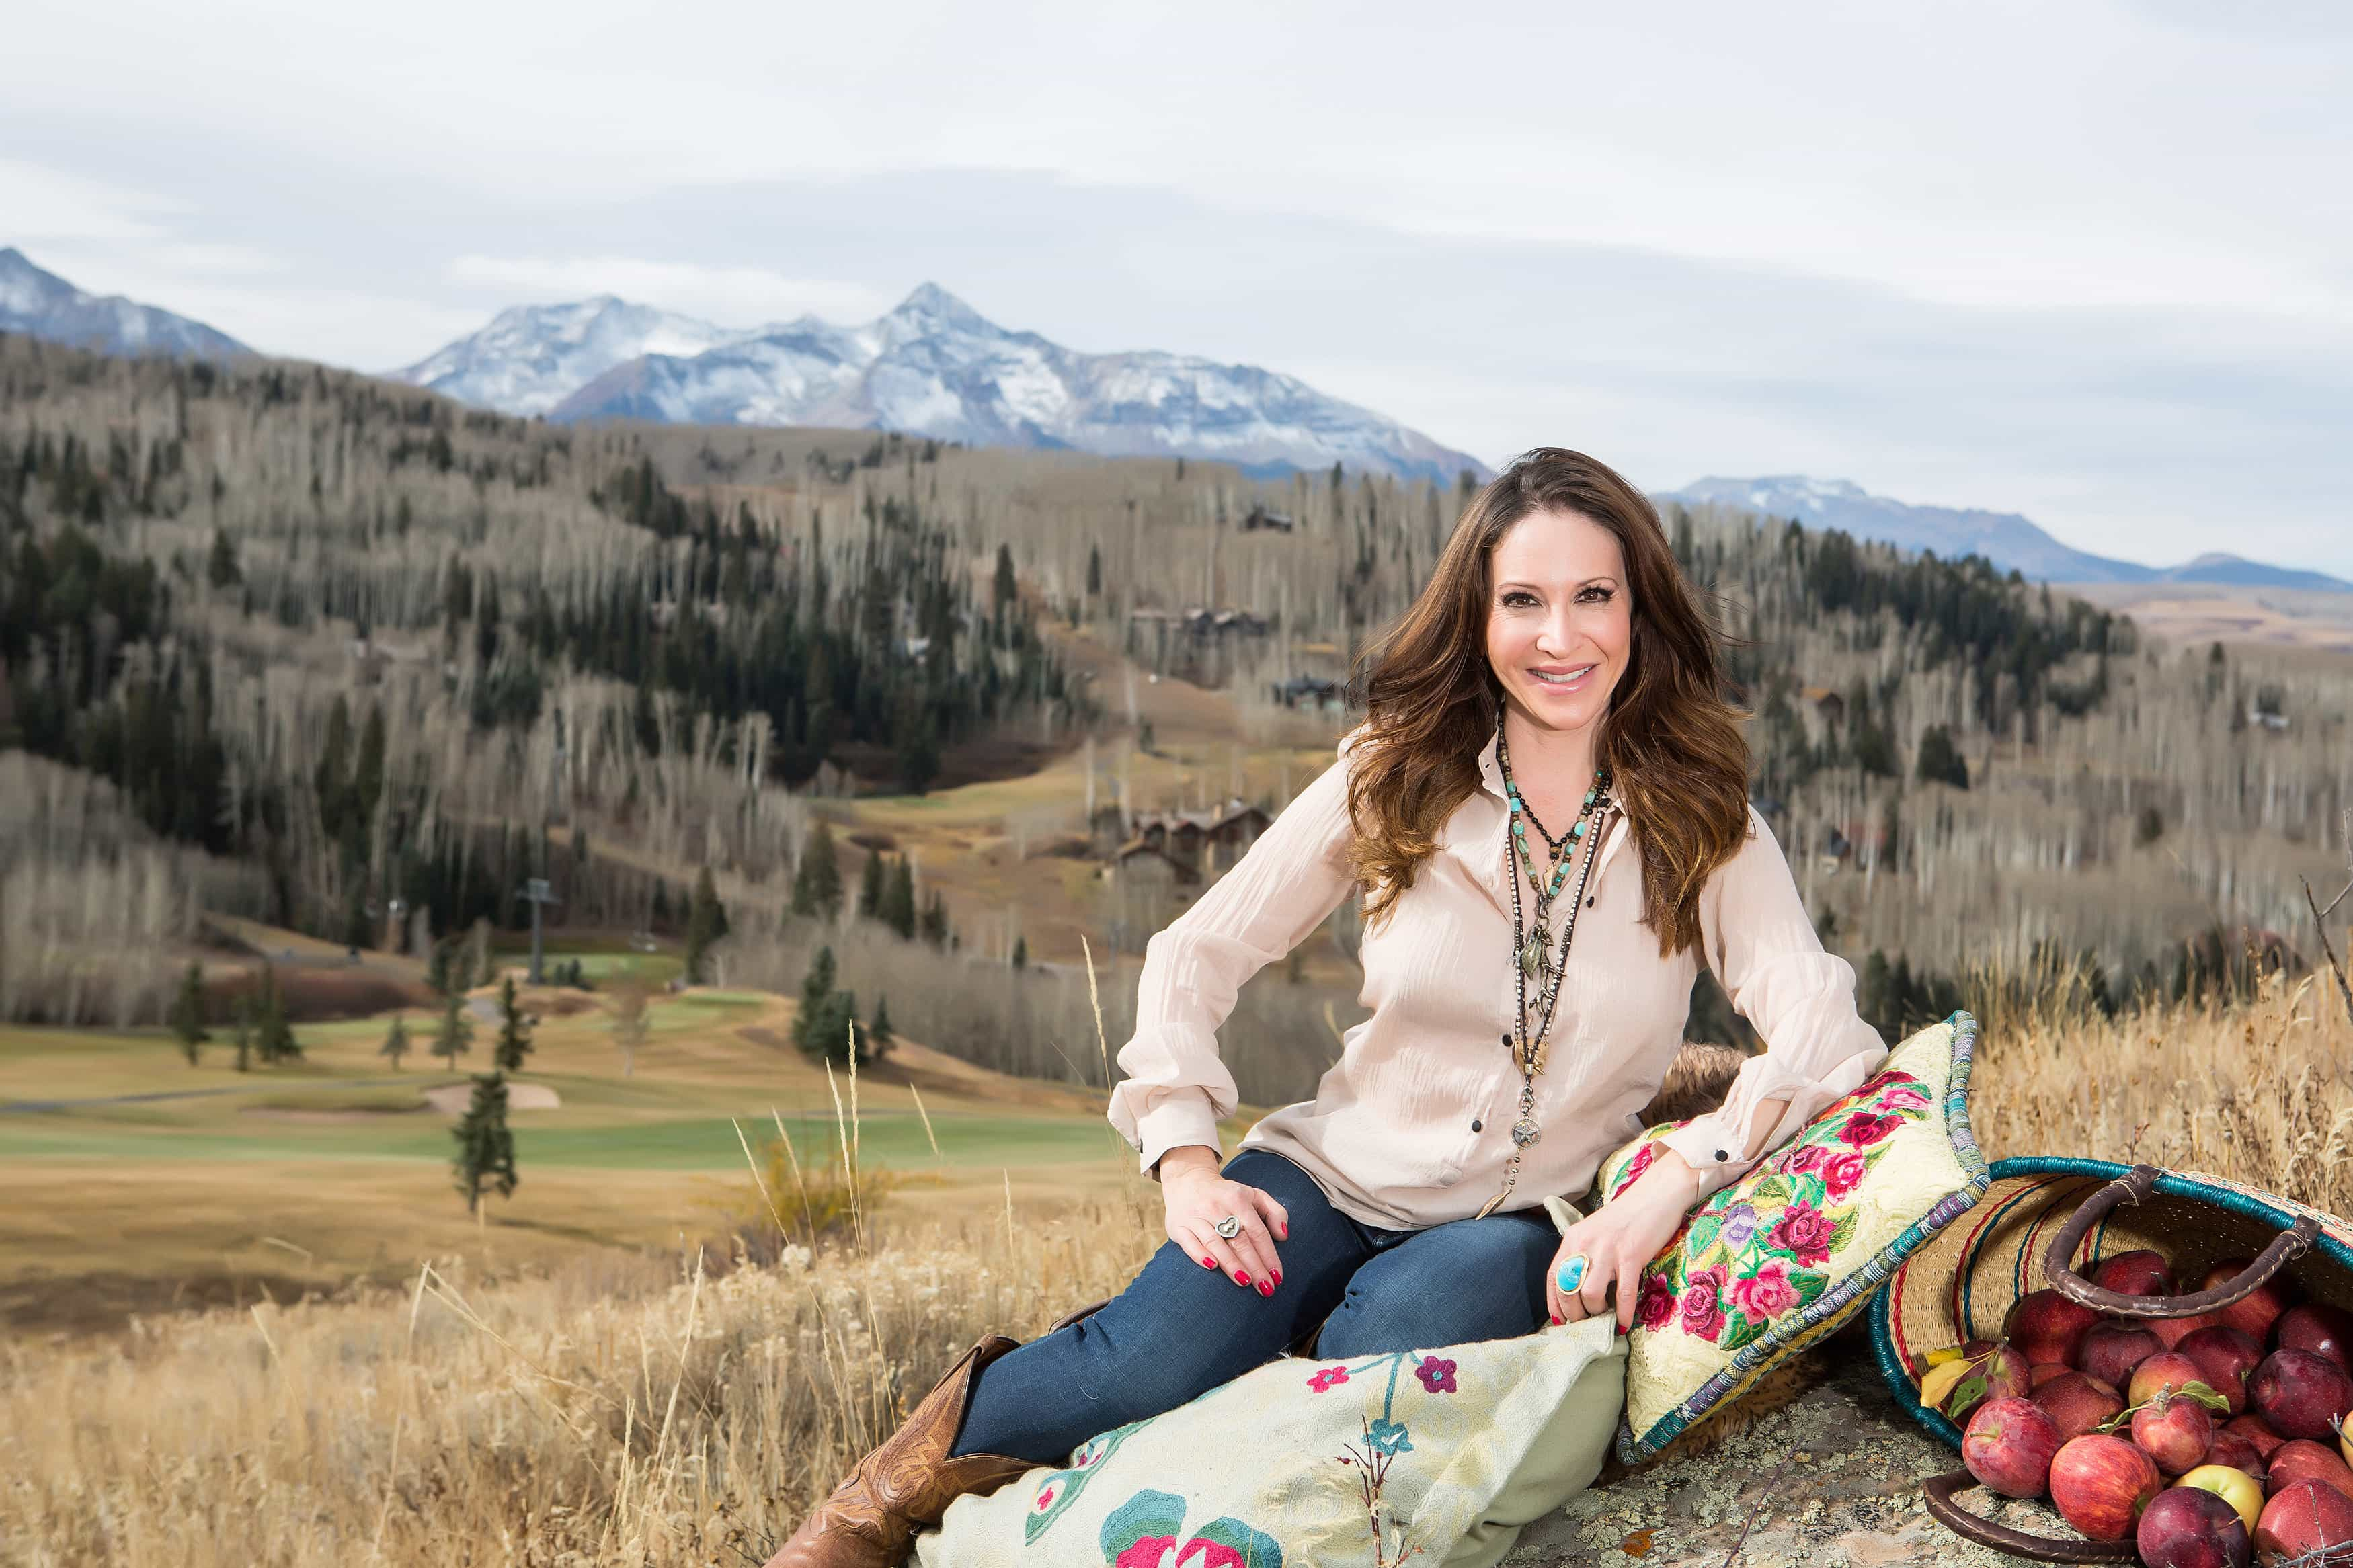 Swoon Talent's food blogger & cookbook author Marla Meridith from Telluride, Colorado